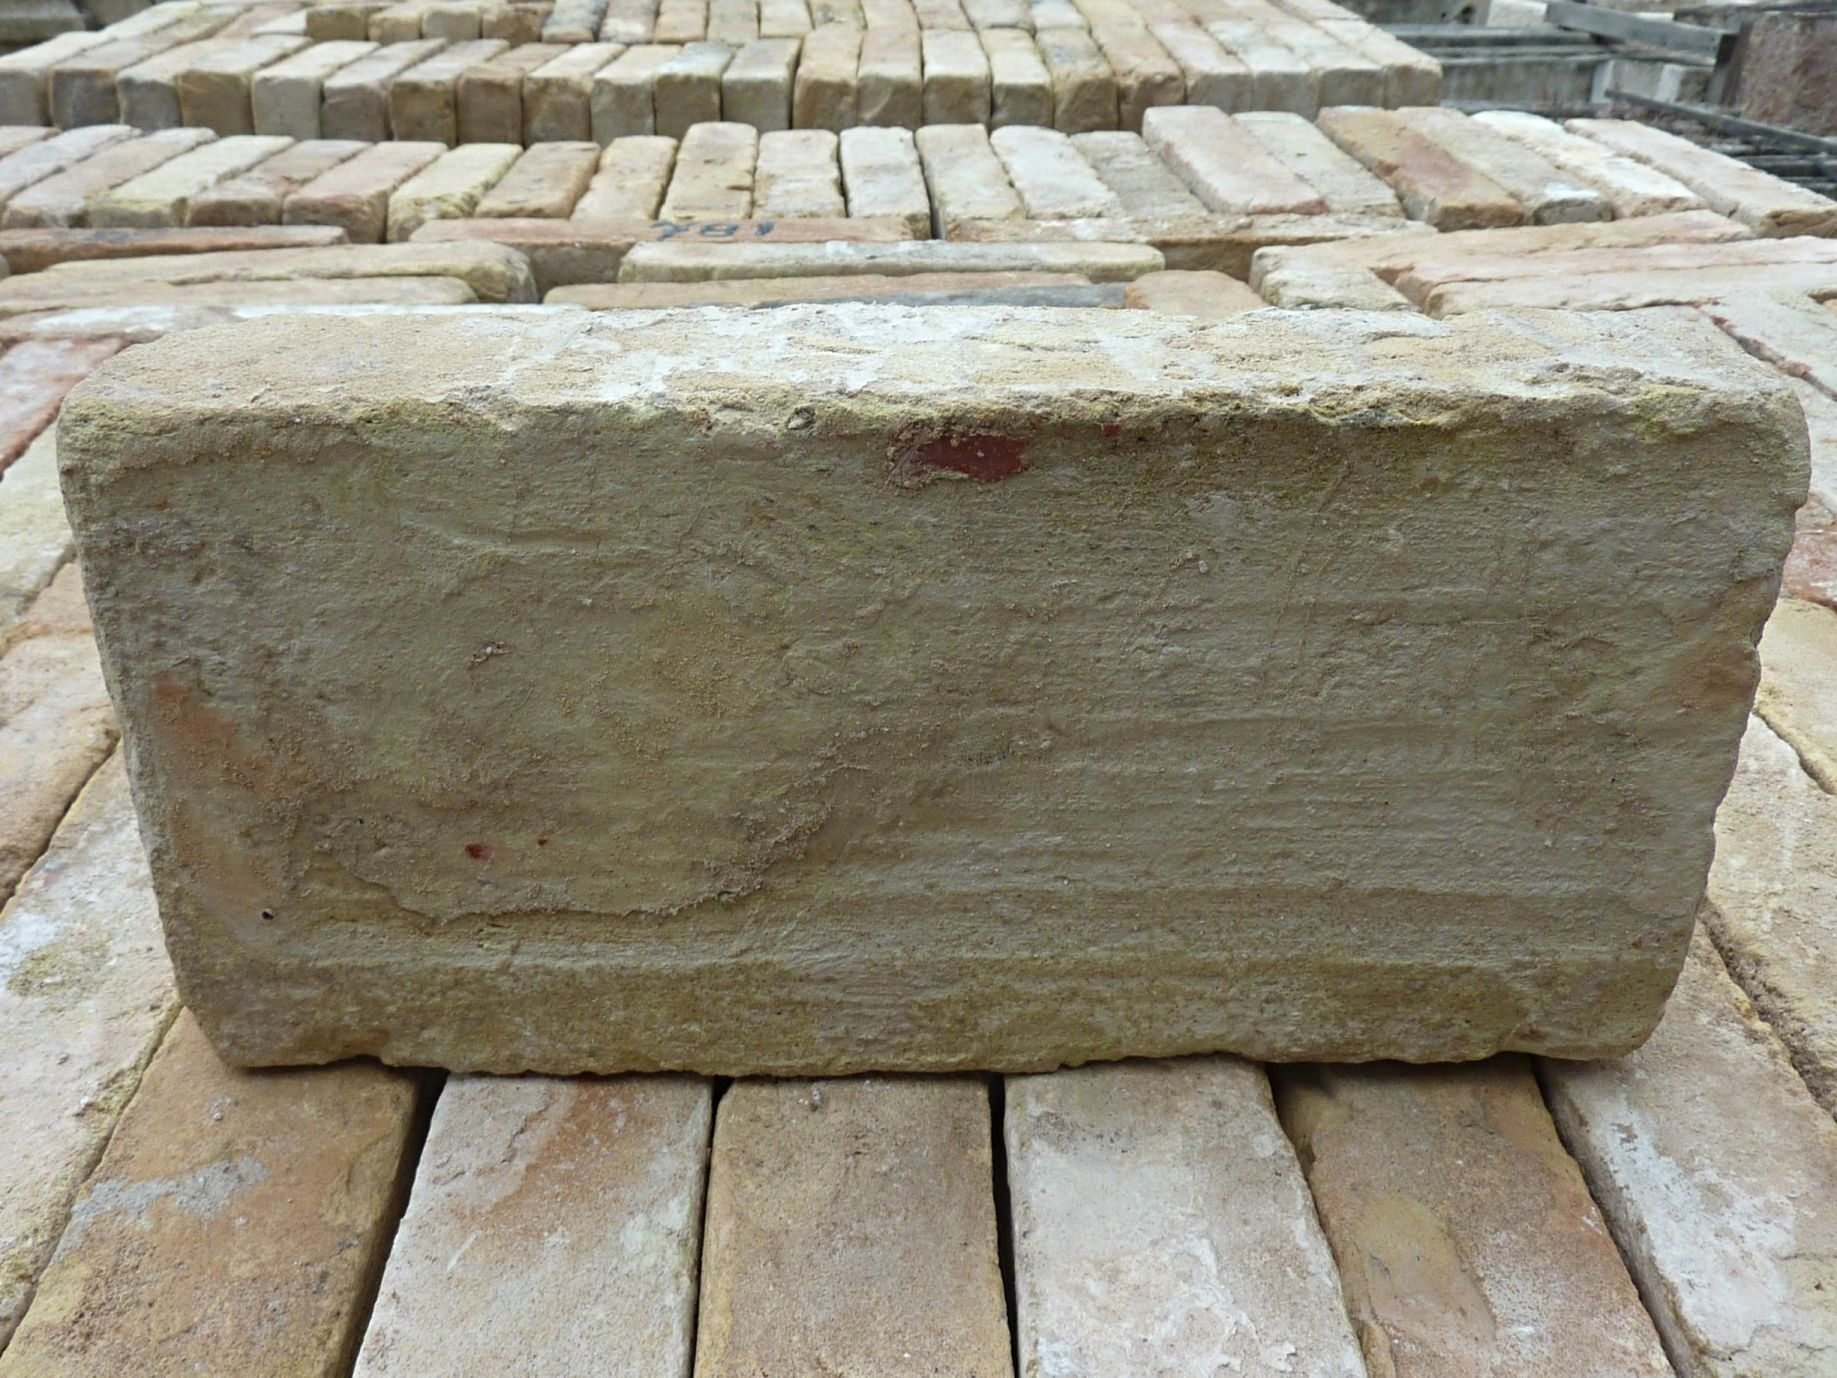 Antique terracotta bricks for a rustic paving ǀ Bidal antique materials